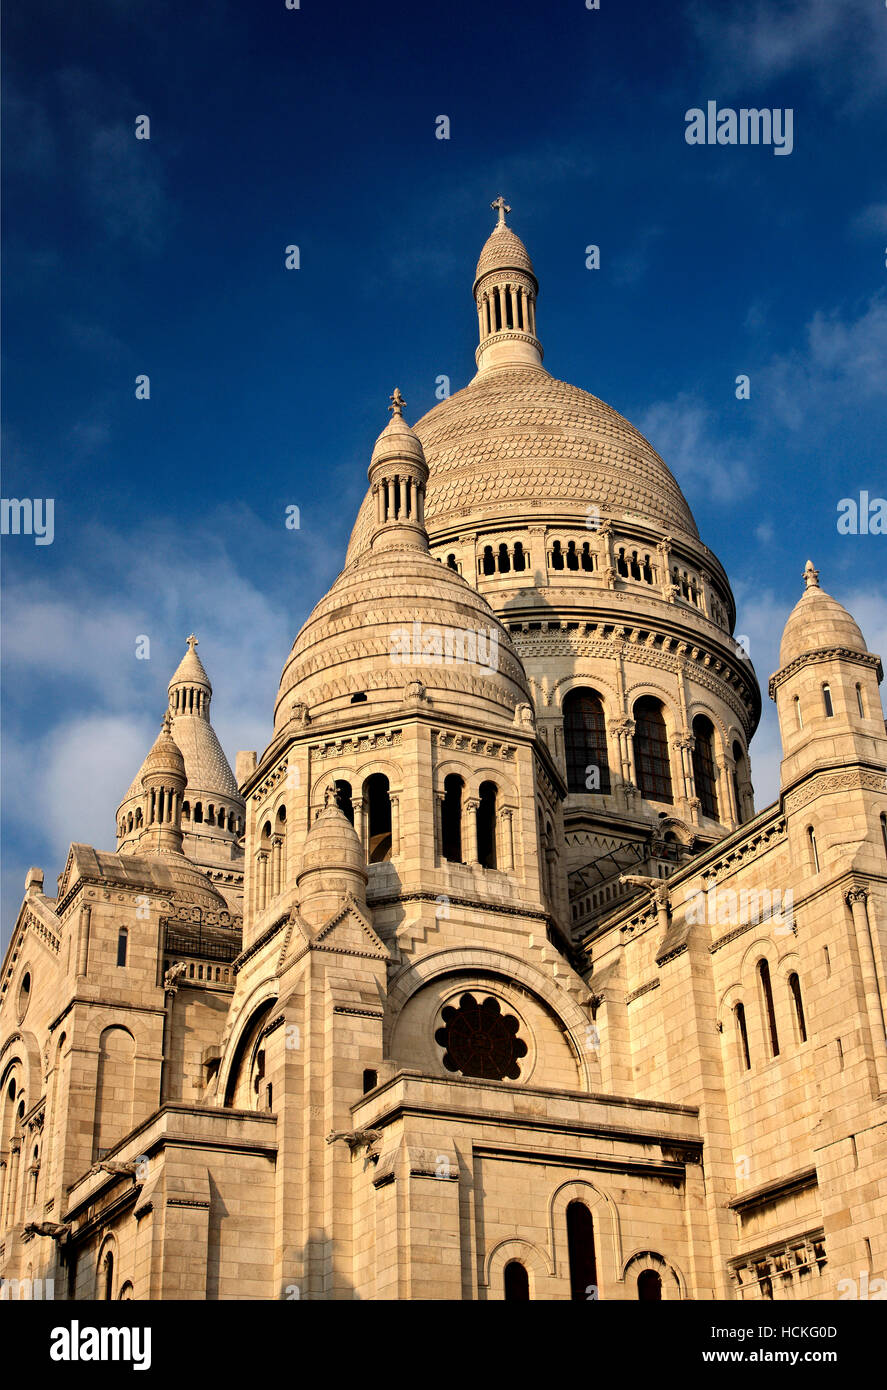 The Basilique du   Sacré-Cœur ('Basilica of the Sacred Heart), simply known as 'Sacré-Cœur', - Stock Image